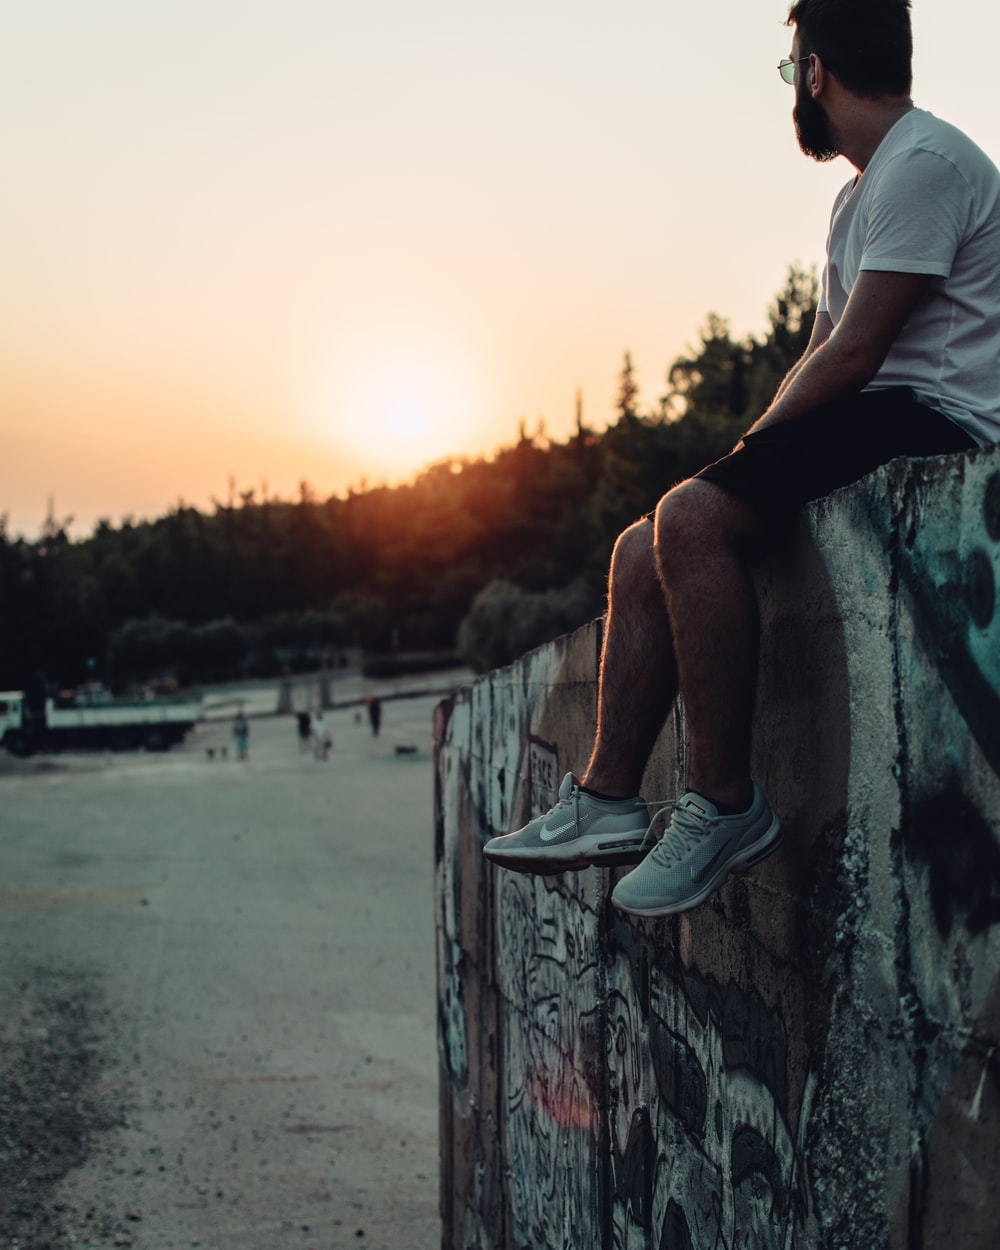 man in white t-shirt sitting on concrete fence during sunset